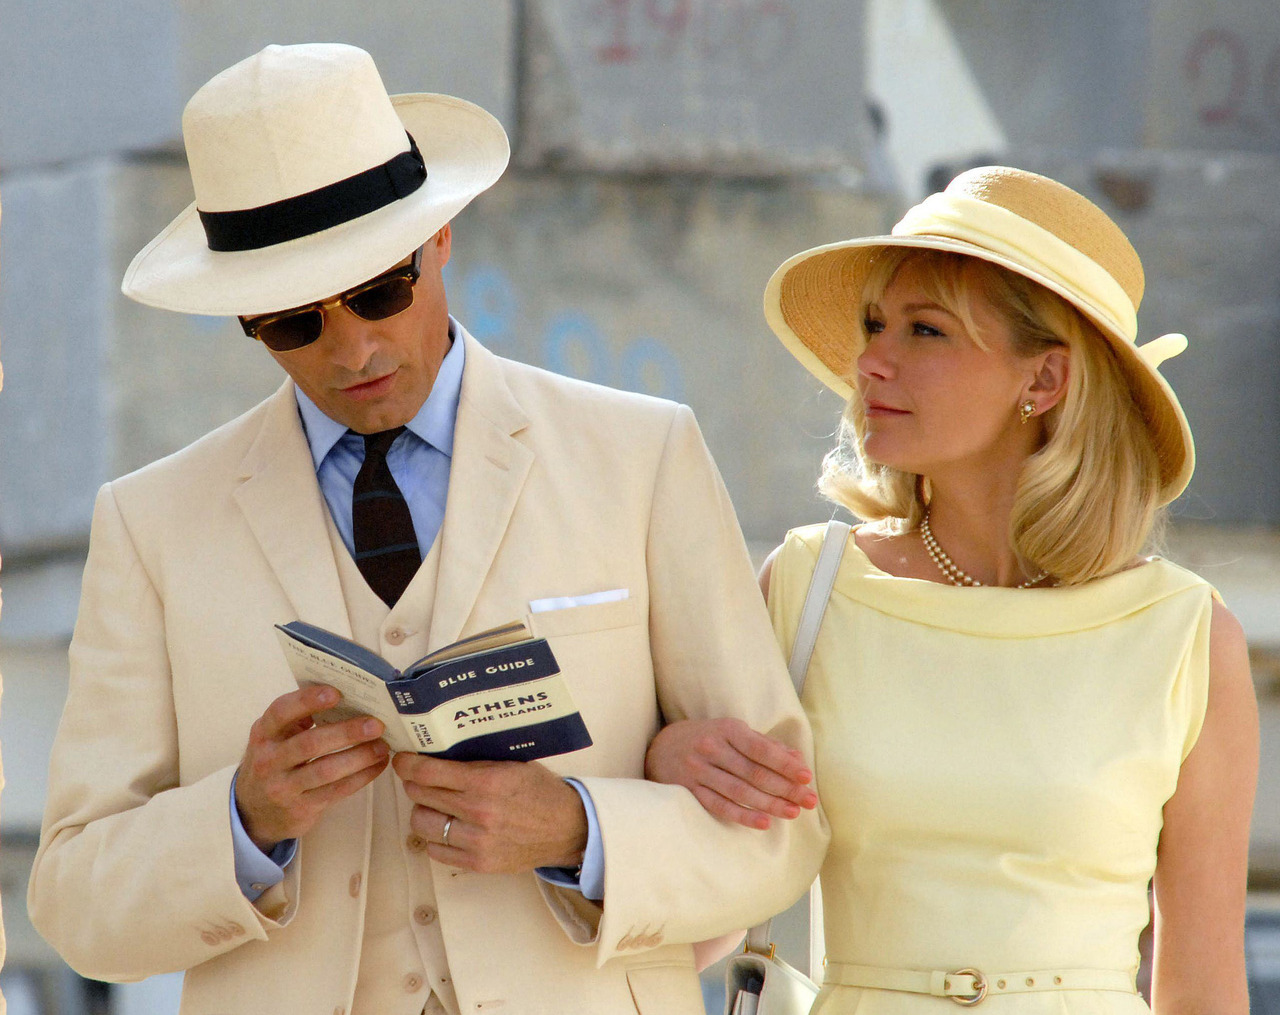 Viggo Mortensen and Kirsten Dunst filming The Two Faces of January in Athens, October 15th